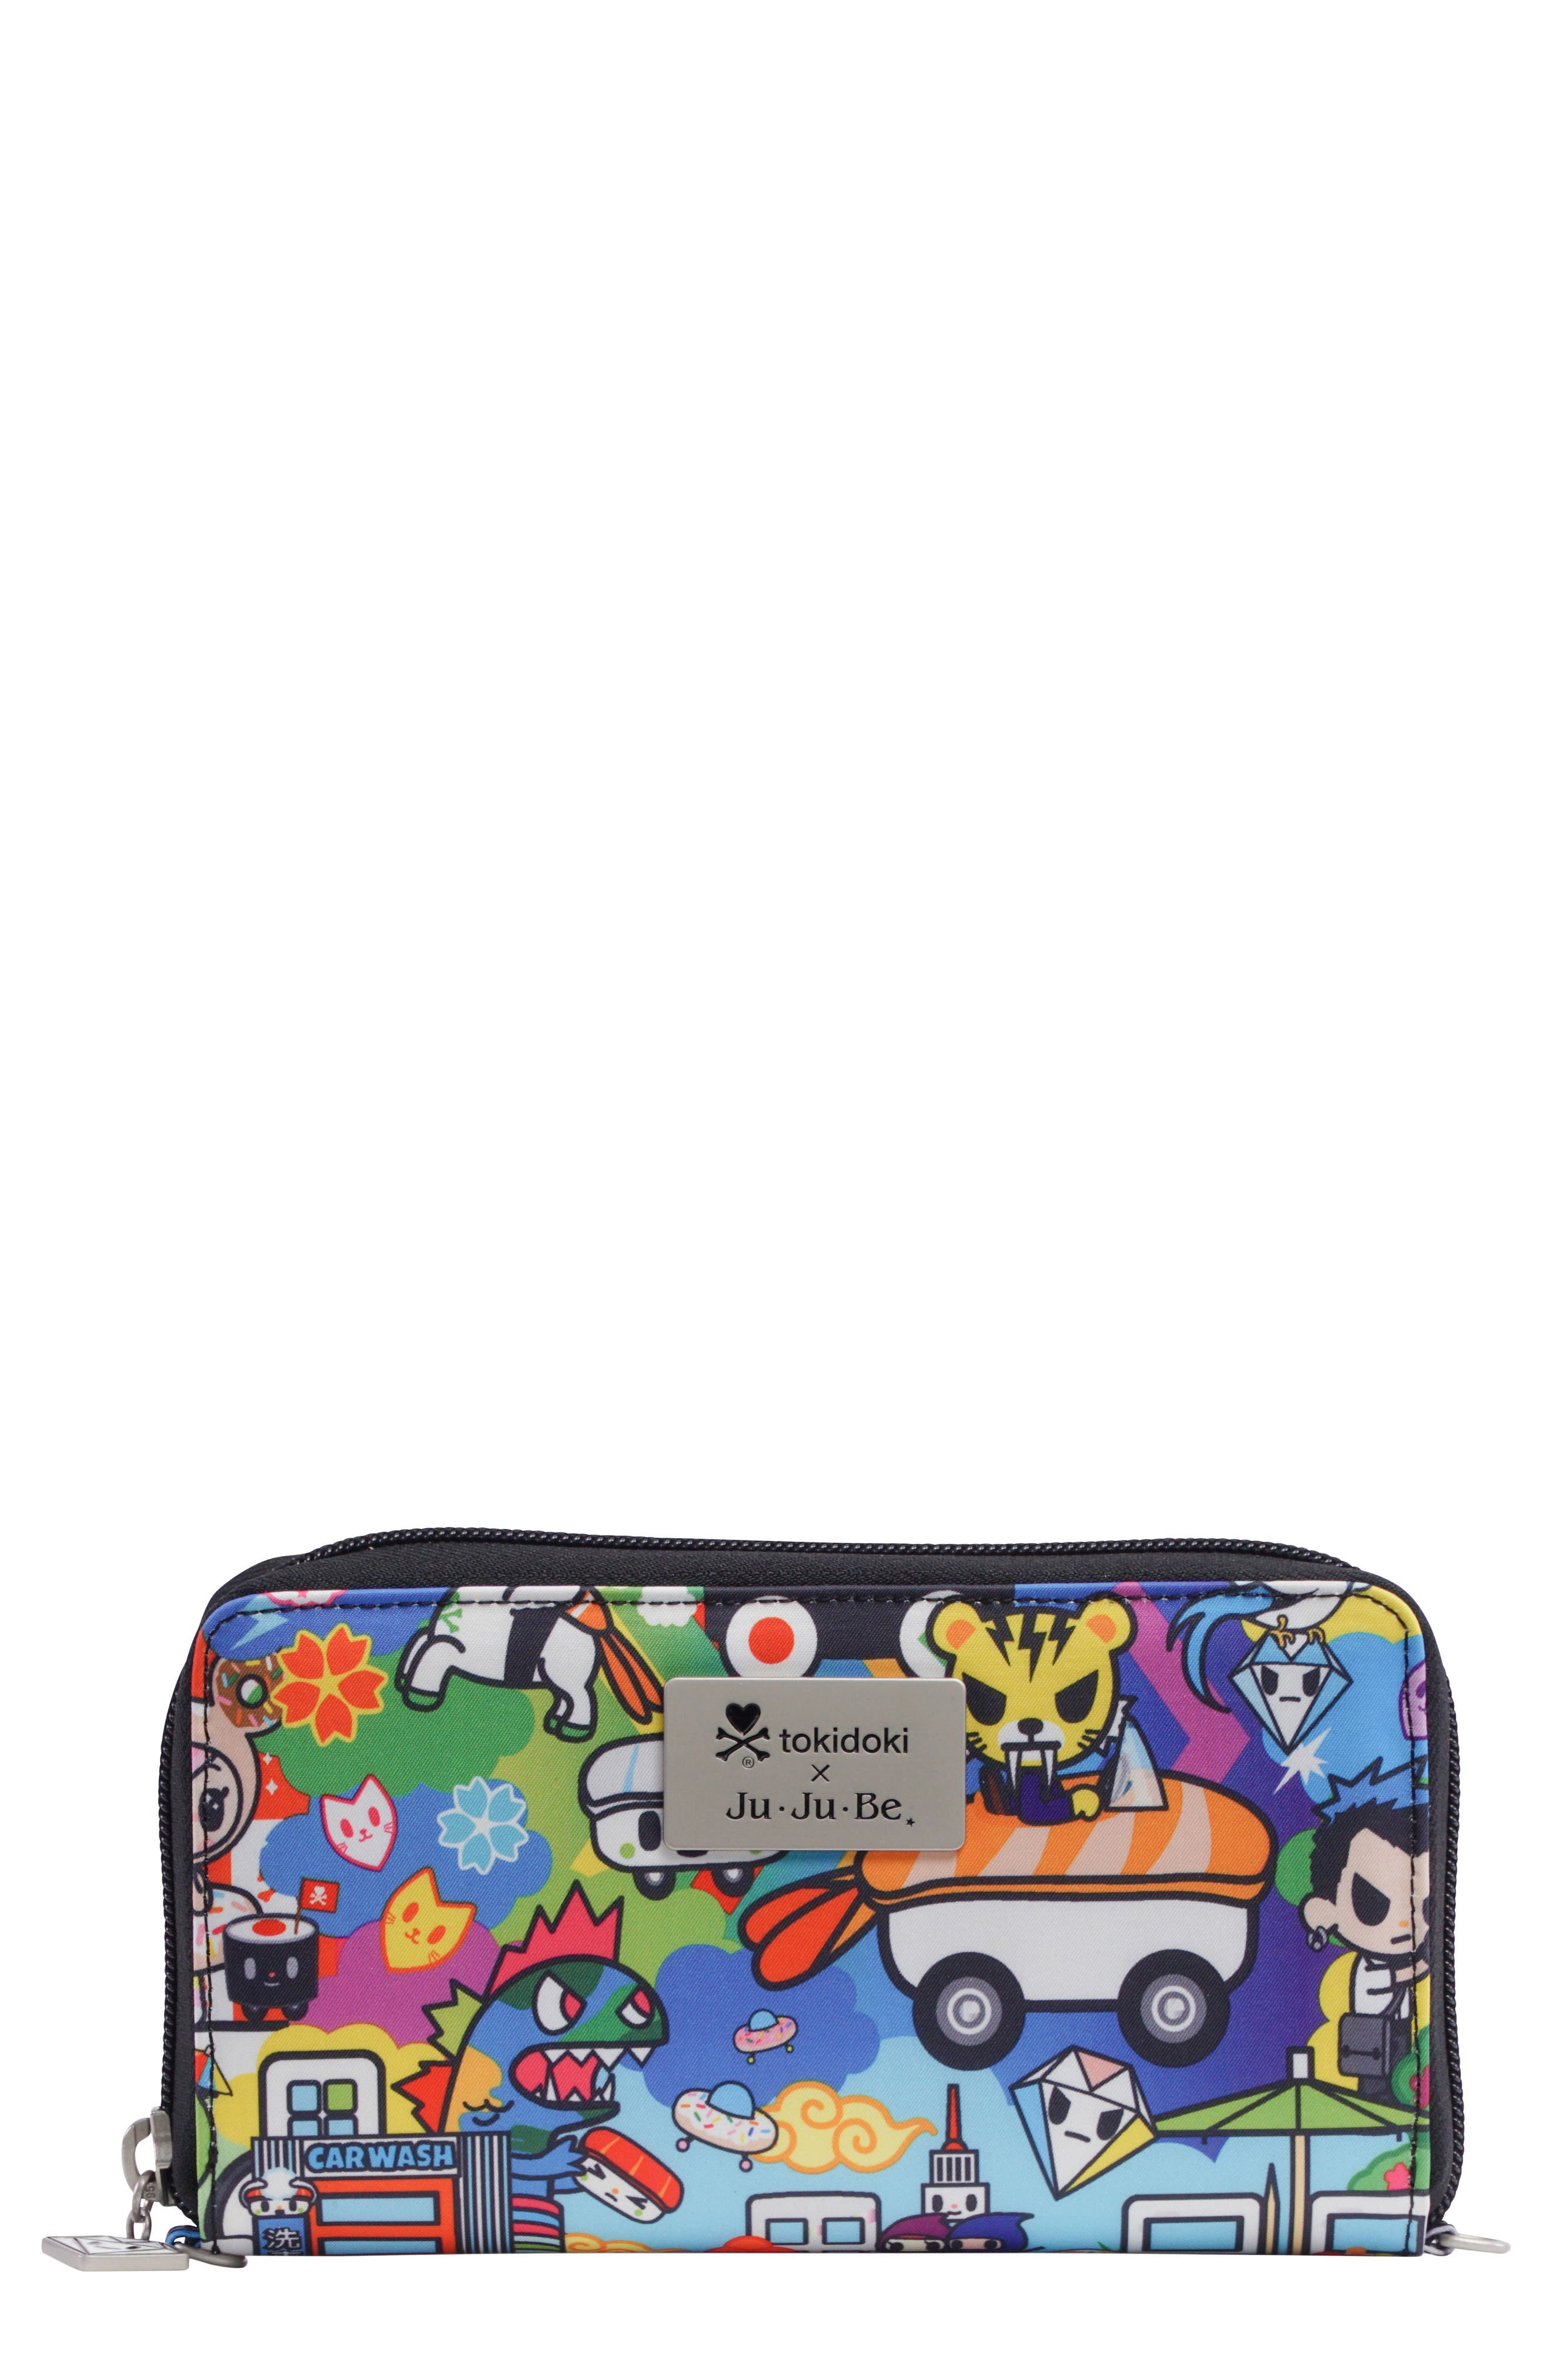 x tokidoki Be Spendy Clutch Wallet,                         Main,                         color, 100